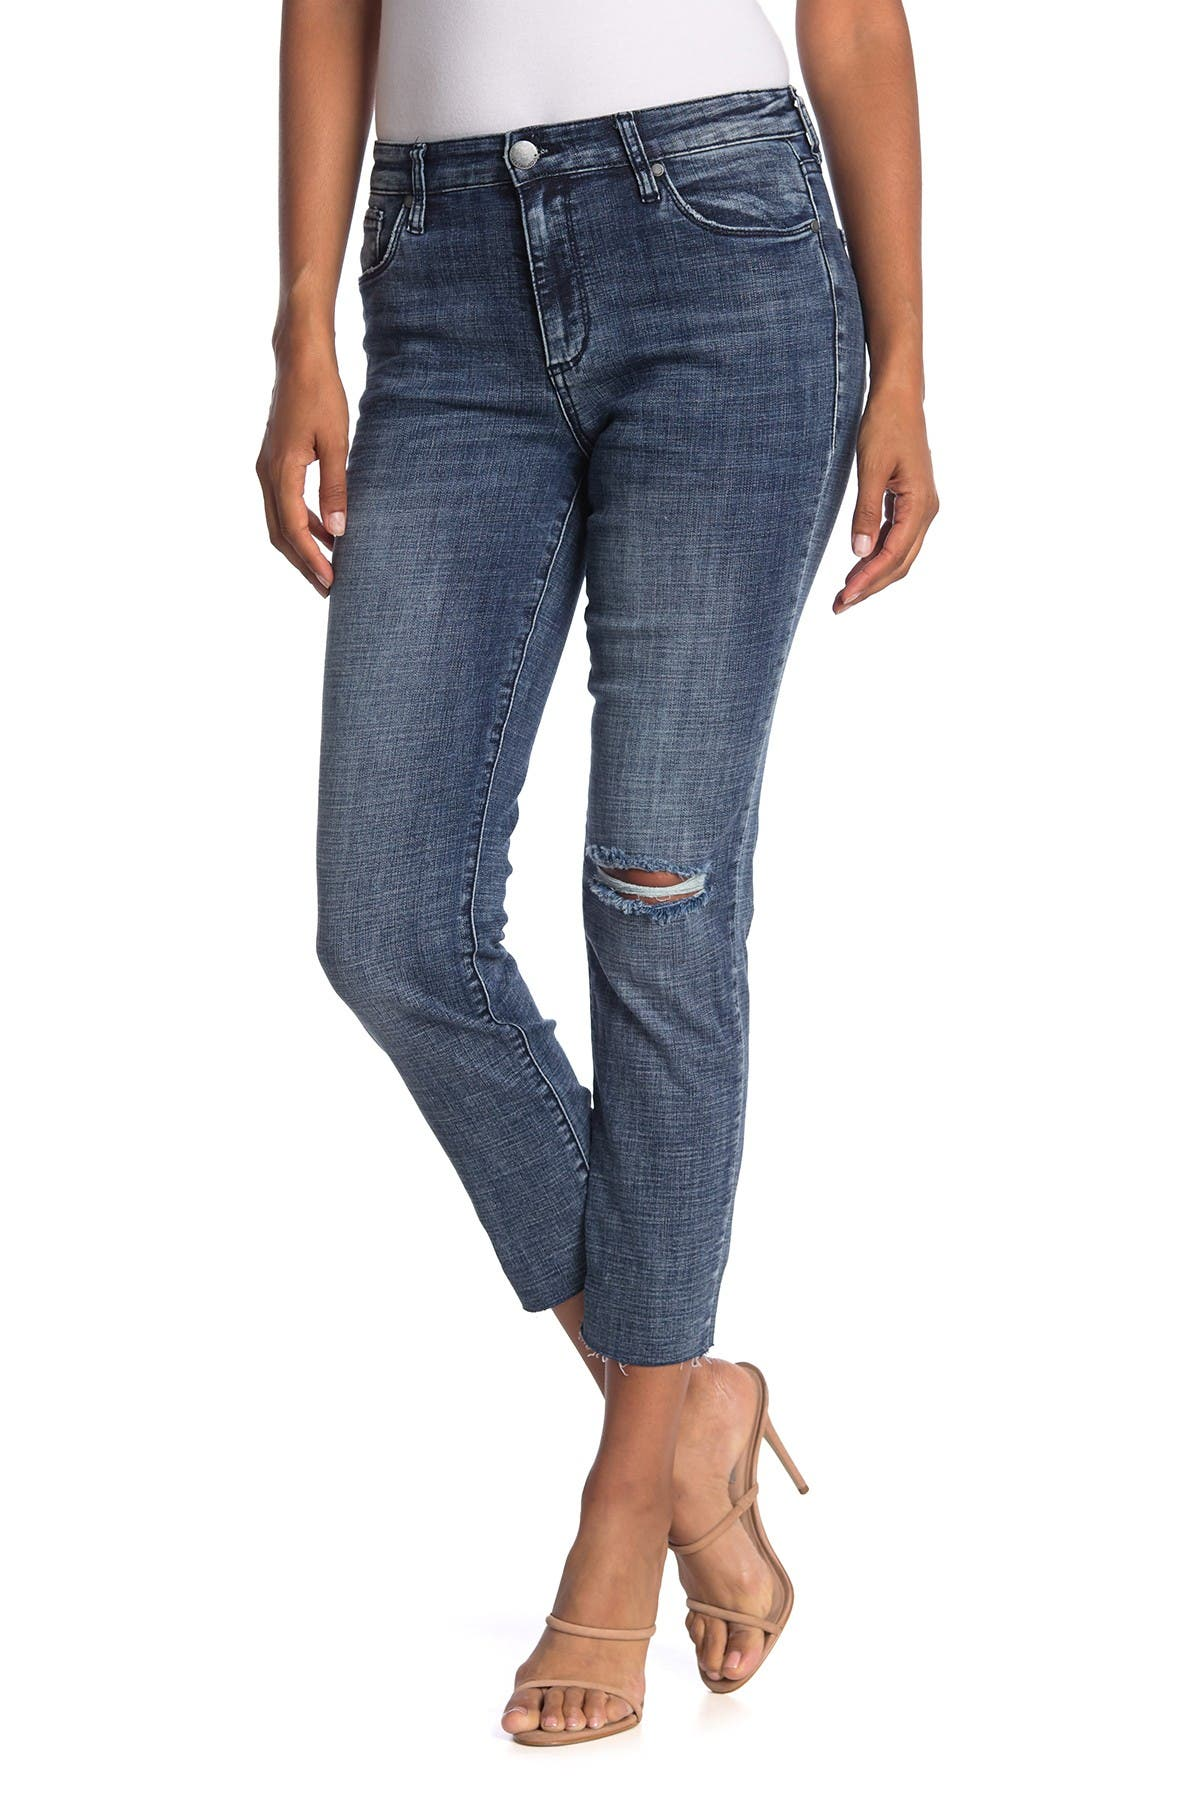 Image of STS BLUE High Rise Straight Leg Cut Off Ripped Jeans